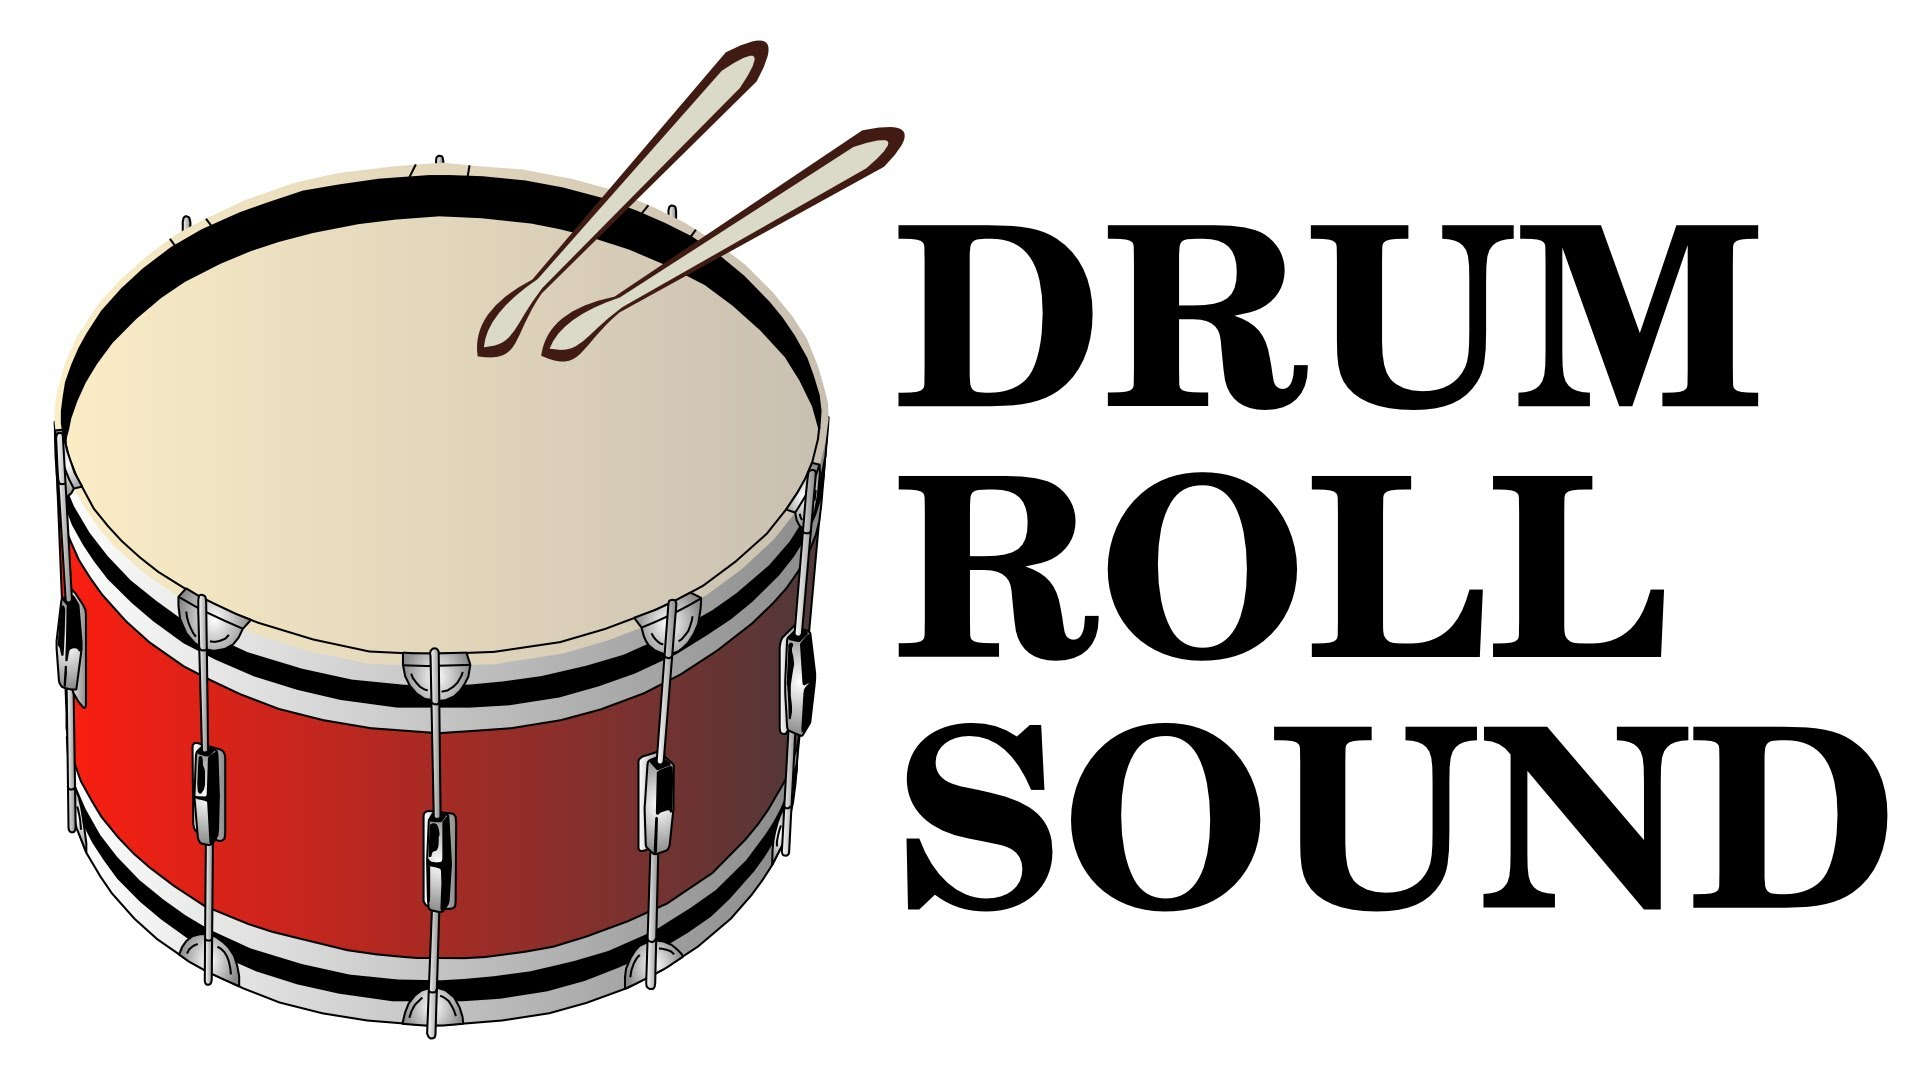 Drum Roll Sound Effect [High Quality, Free Download].